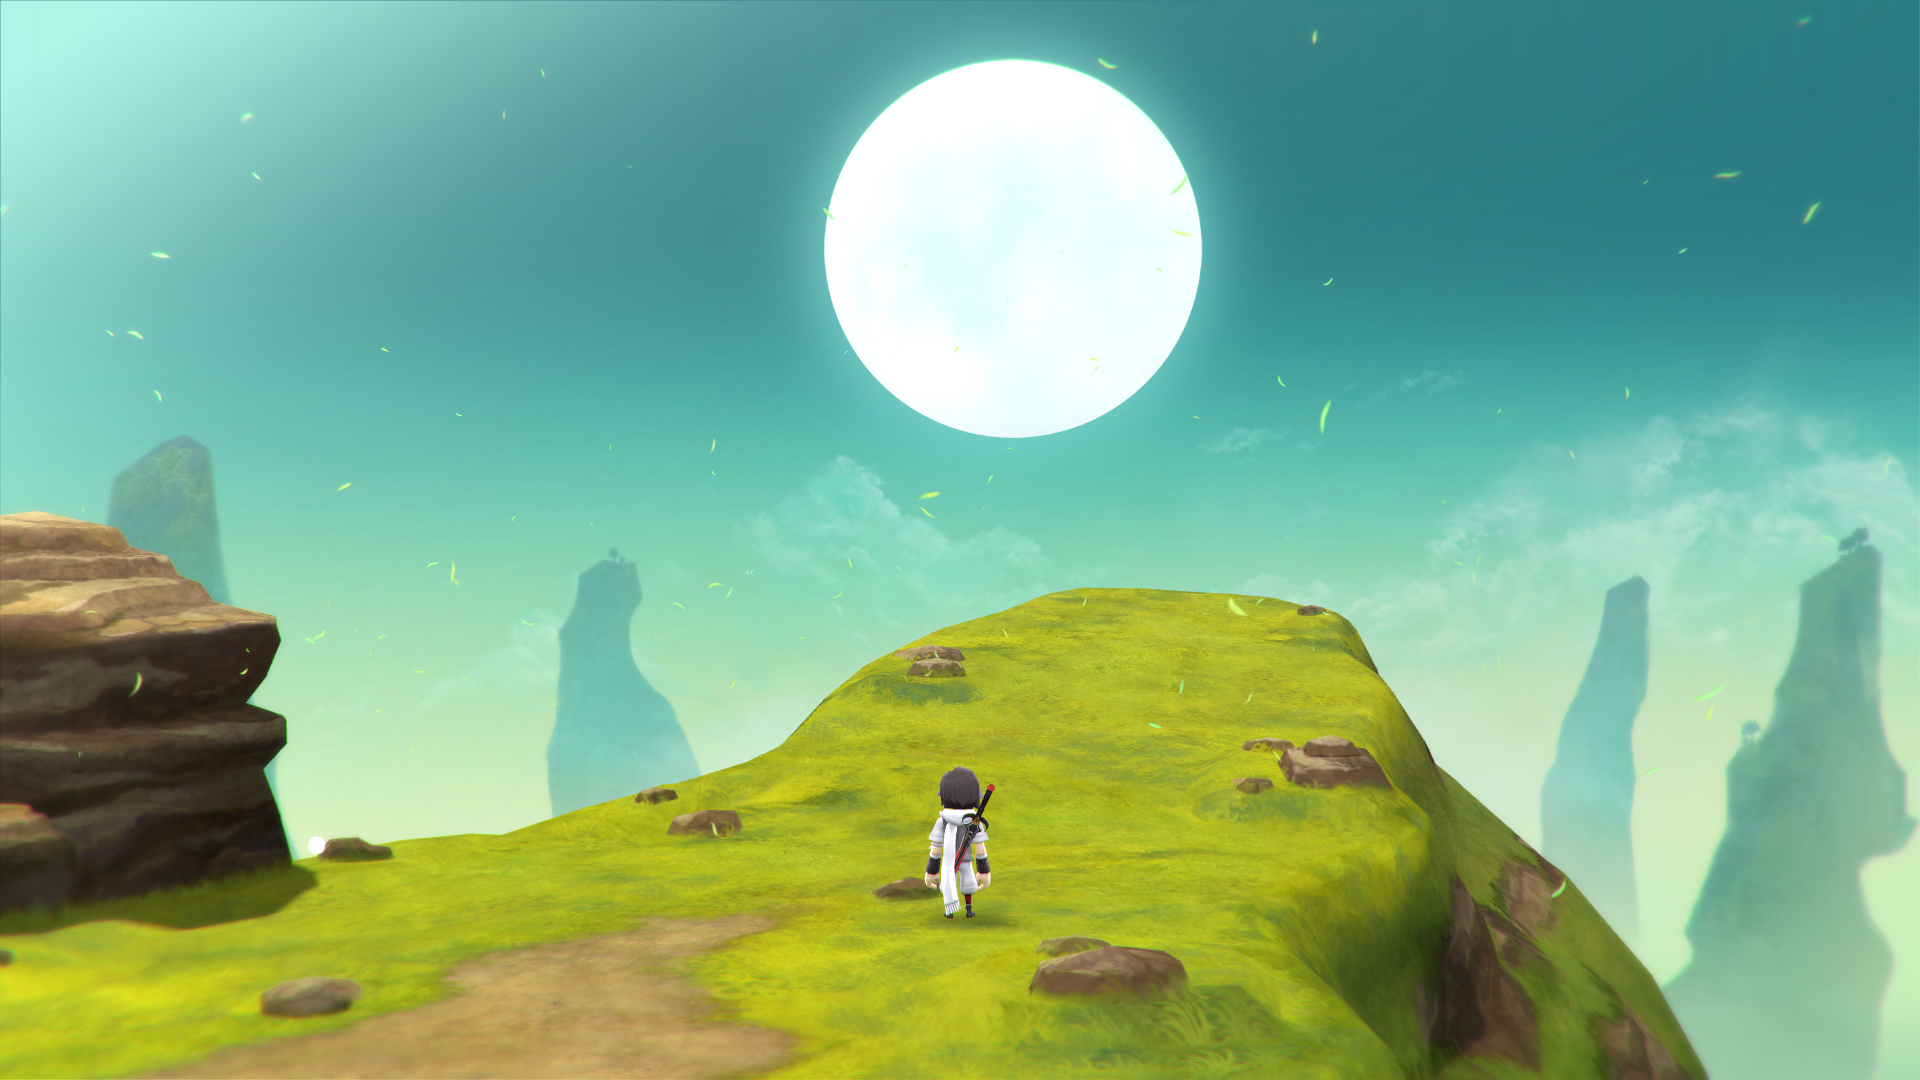 lost sphear character on hill